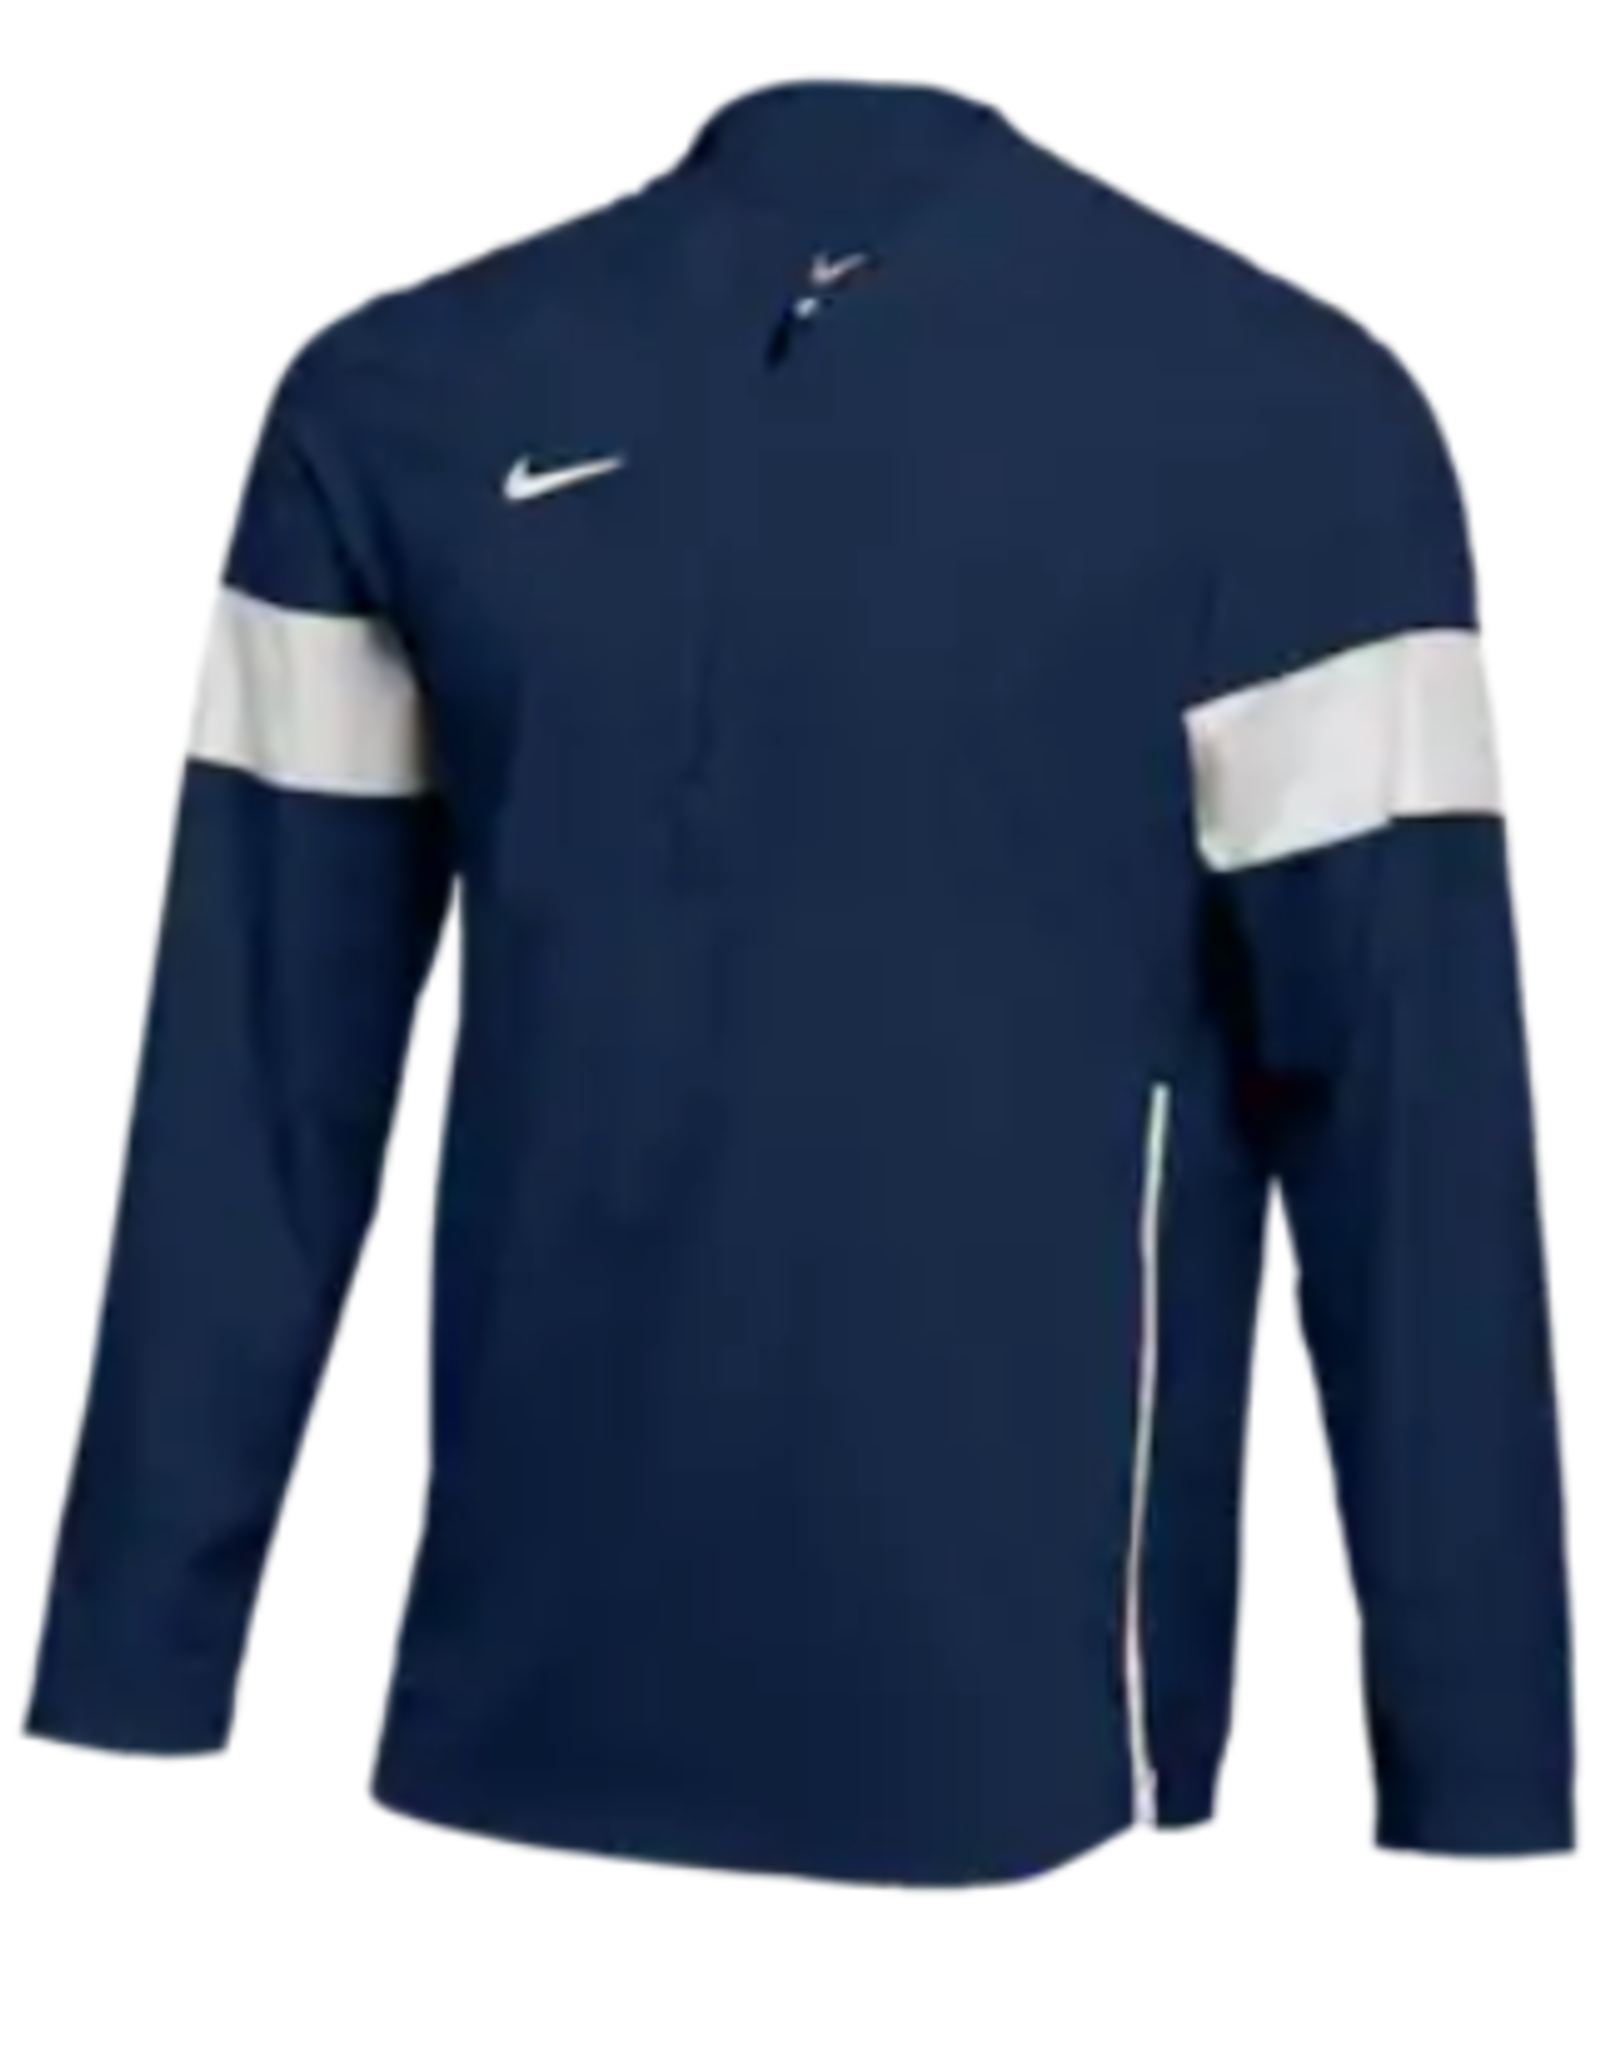 NON-UNIFORM JD Nike Team Authentic Lightweight 1/2 Zip Jacket